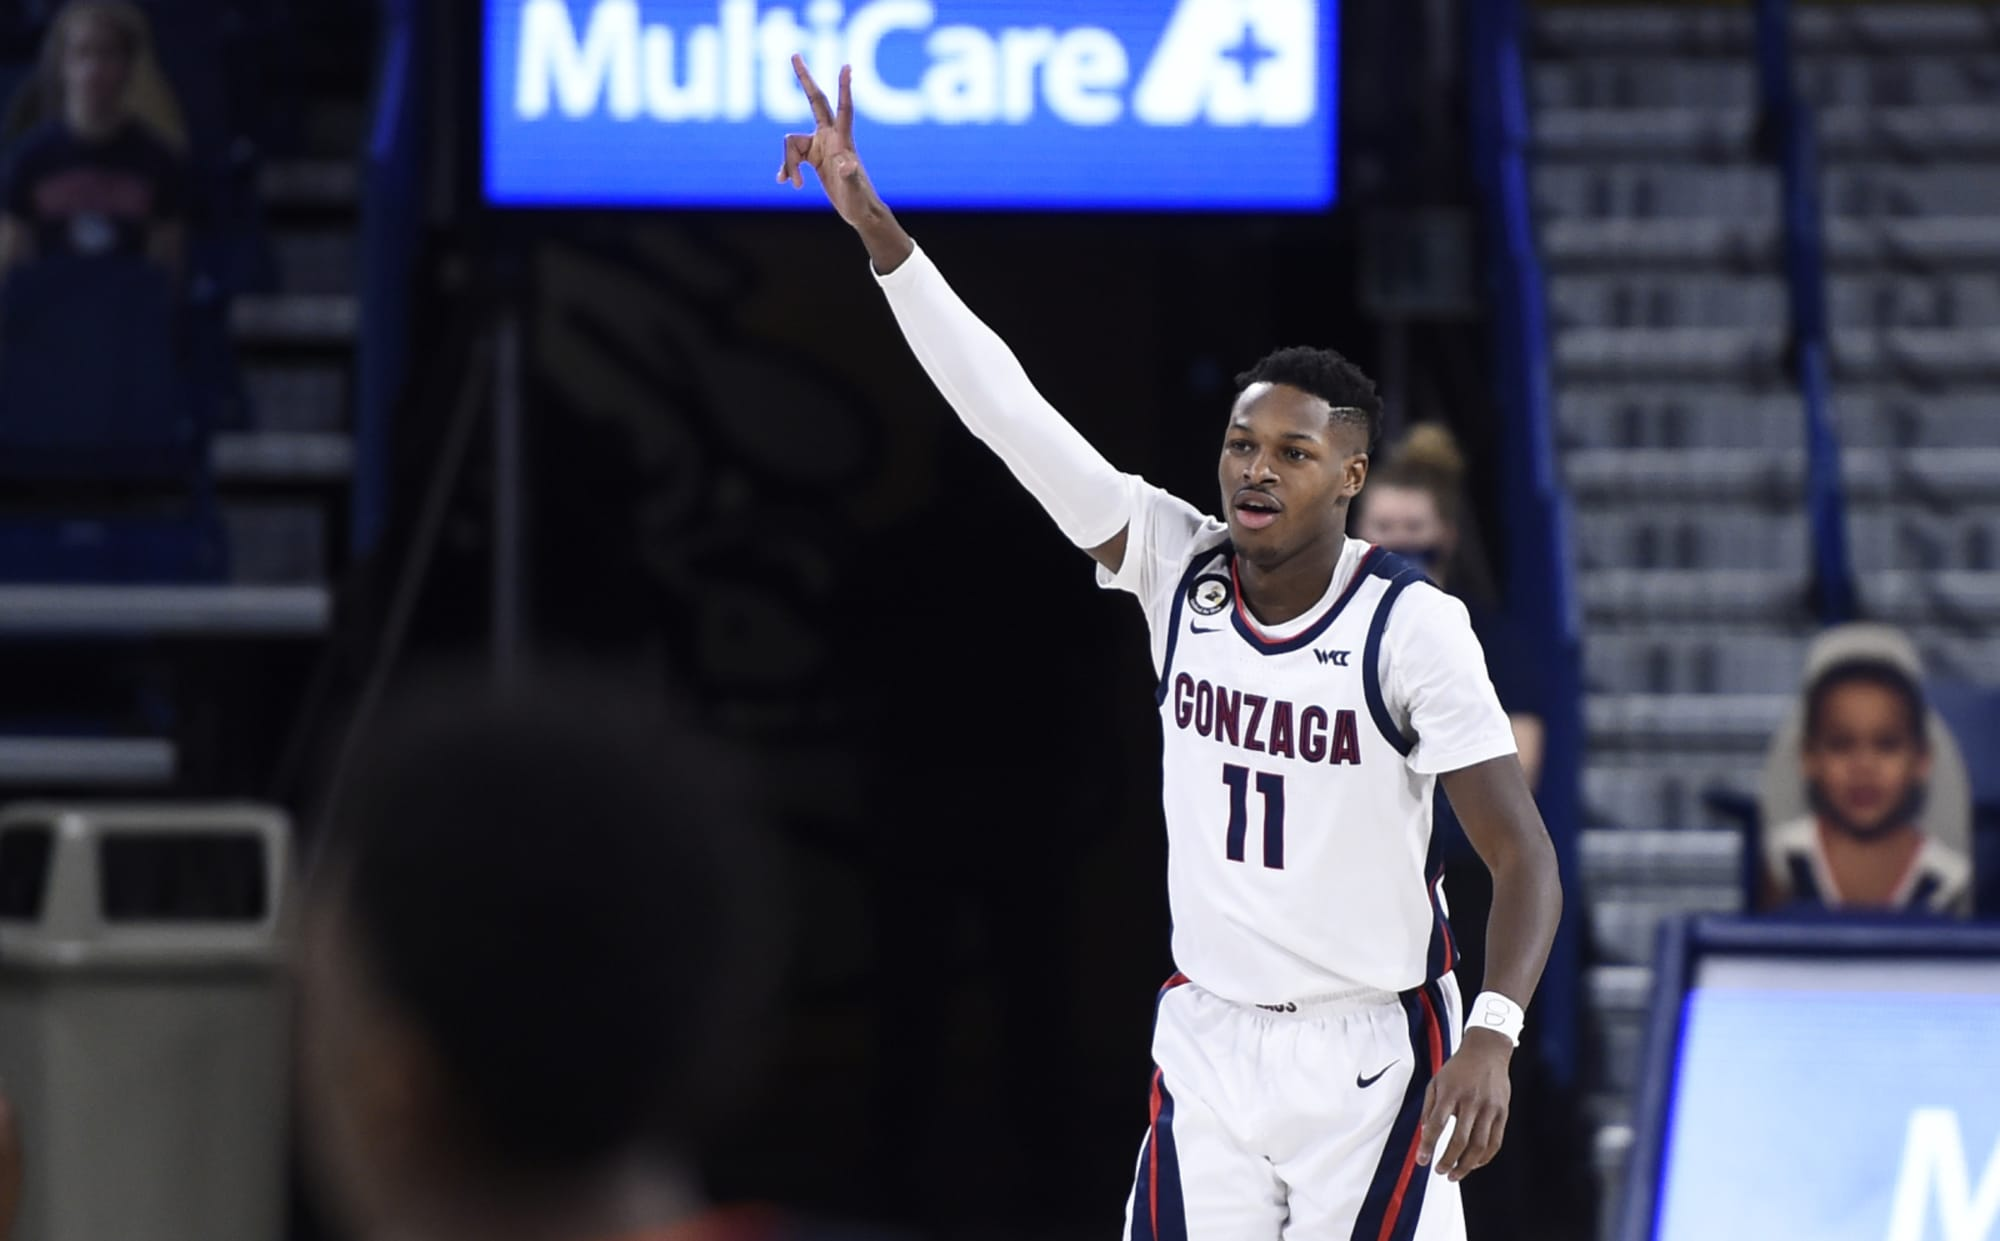 Gonzaga vs. Saint Mary's: 2020-21 basketball game preview, TV schedule